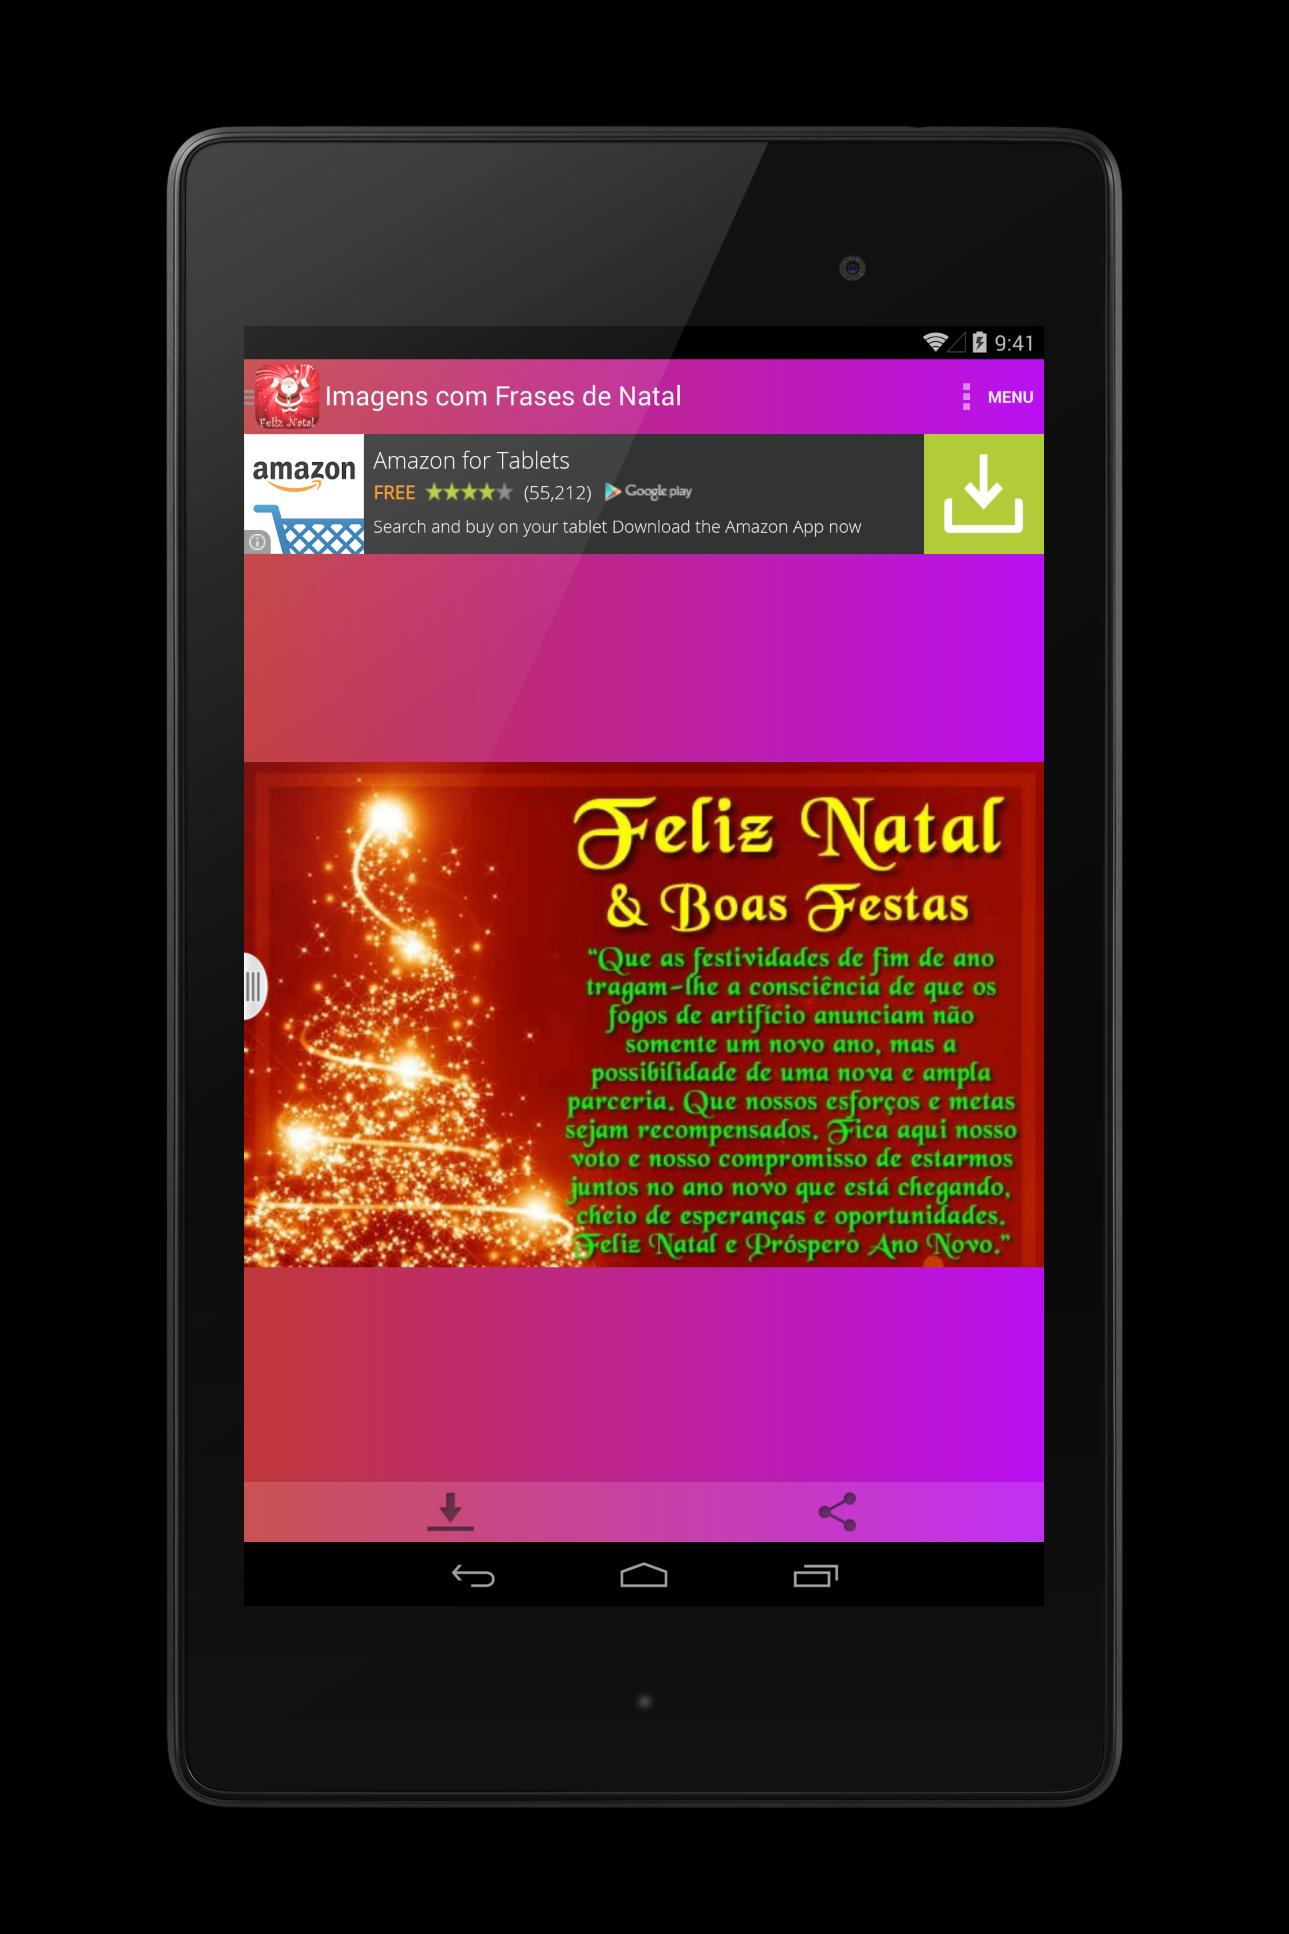 Imagens Com Frases De Natal For Android Apk Download